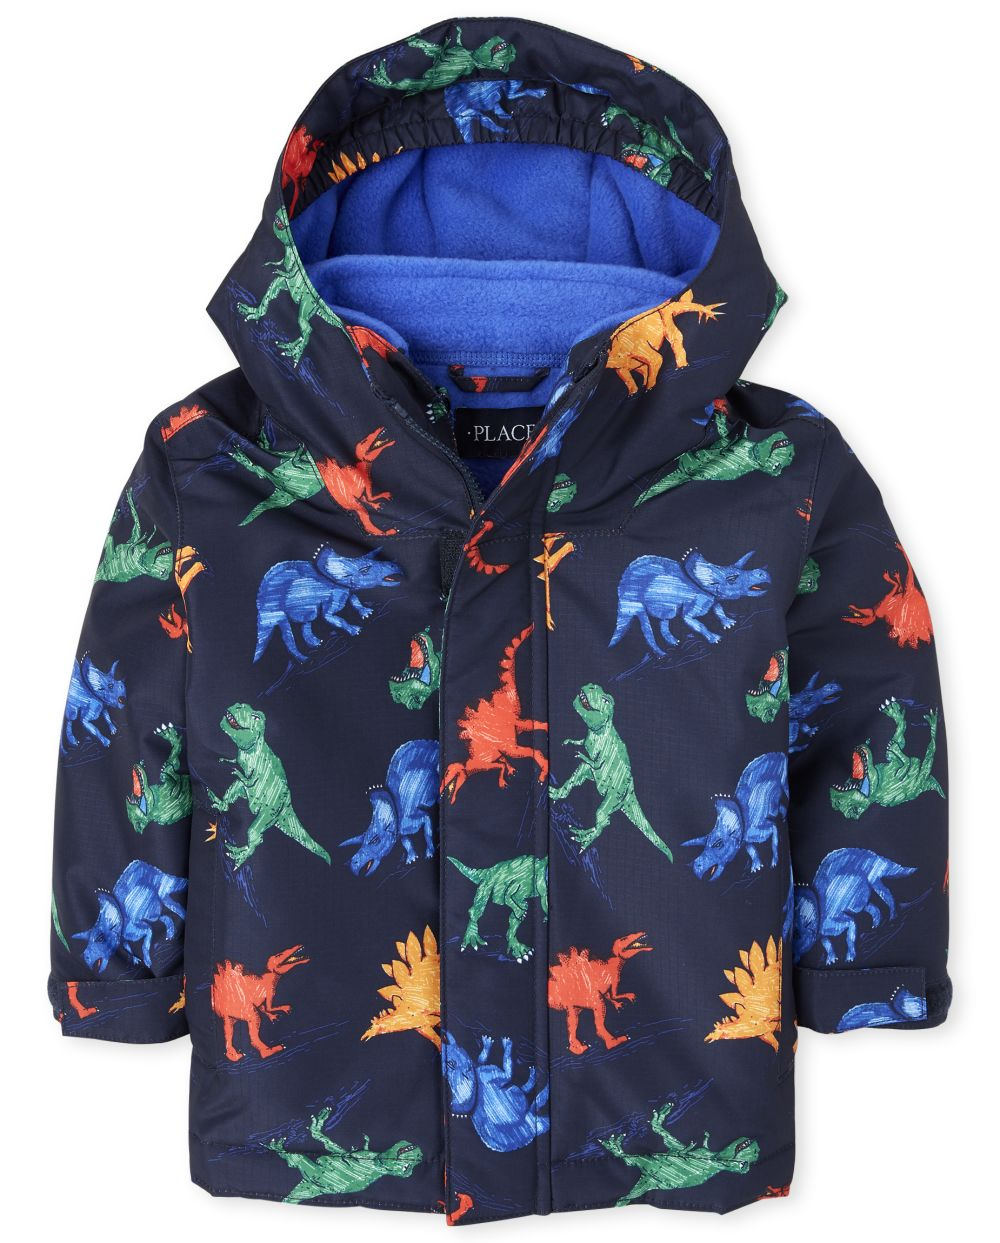 Toddler Boys Print 3 In 1 Jacket